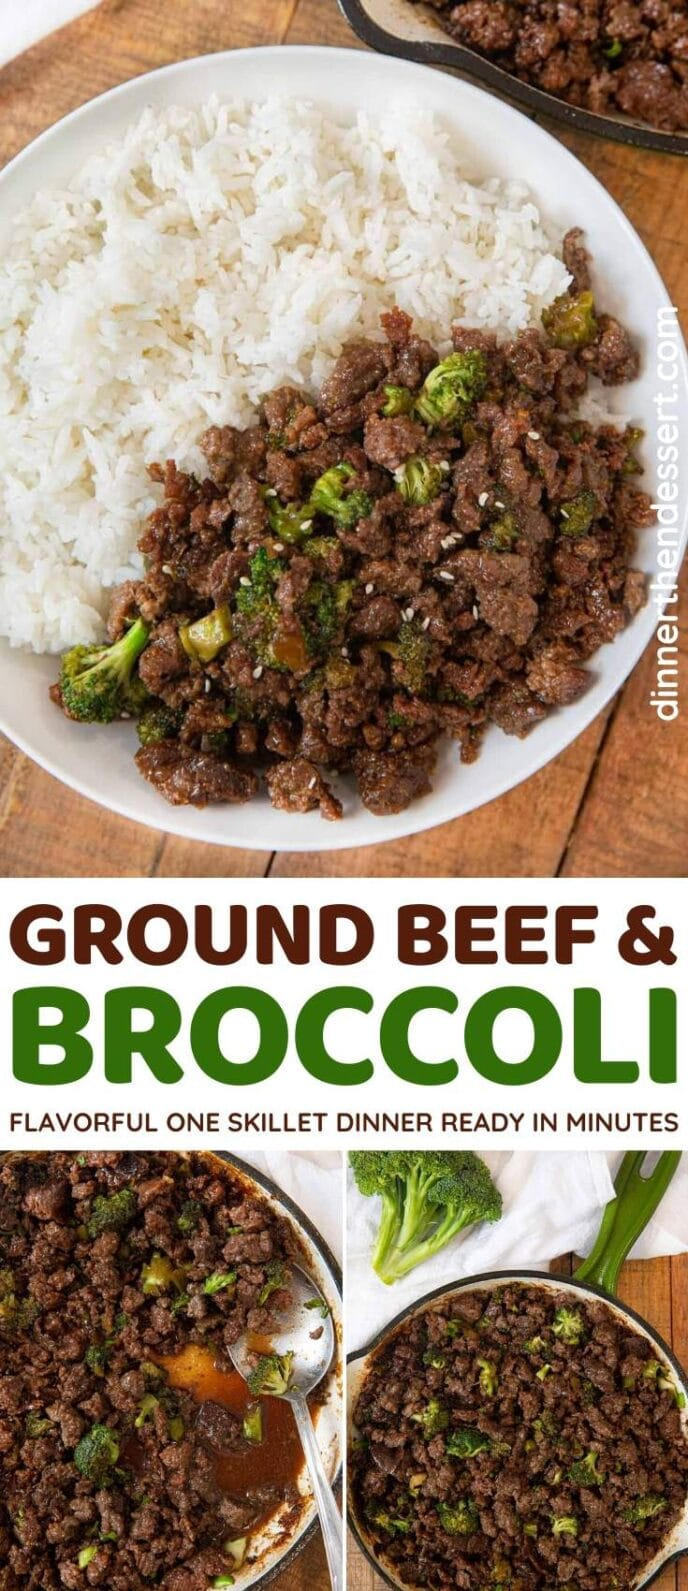 Ground Beef and Broccoli collage